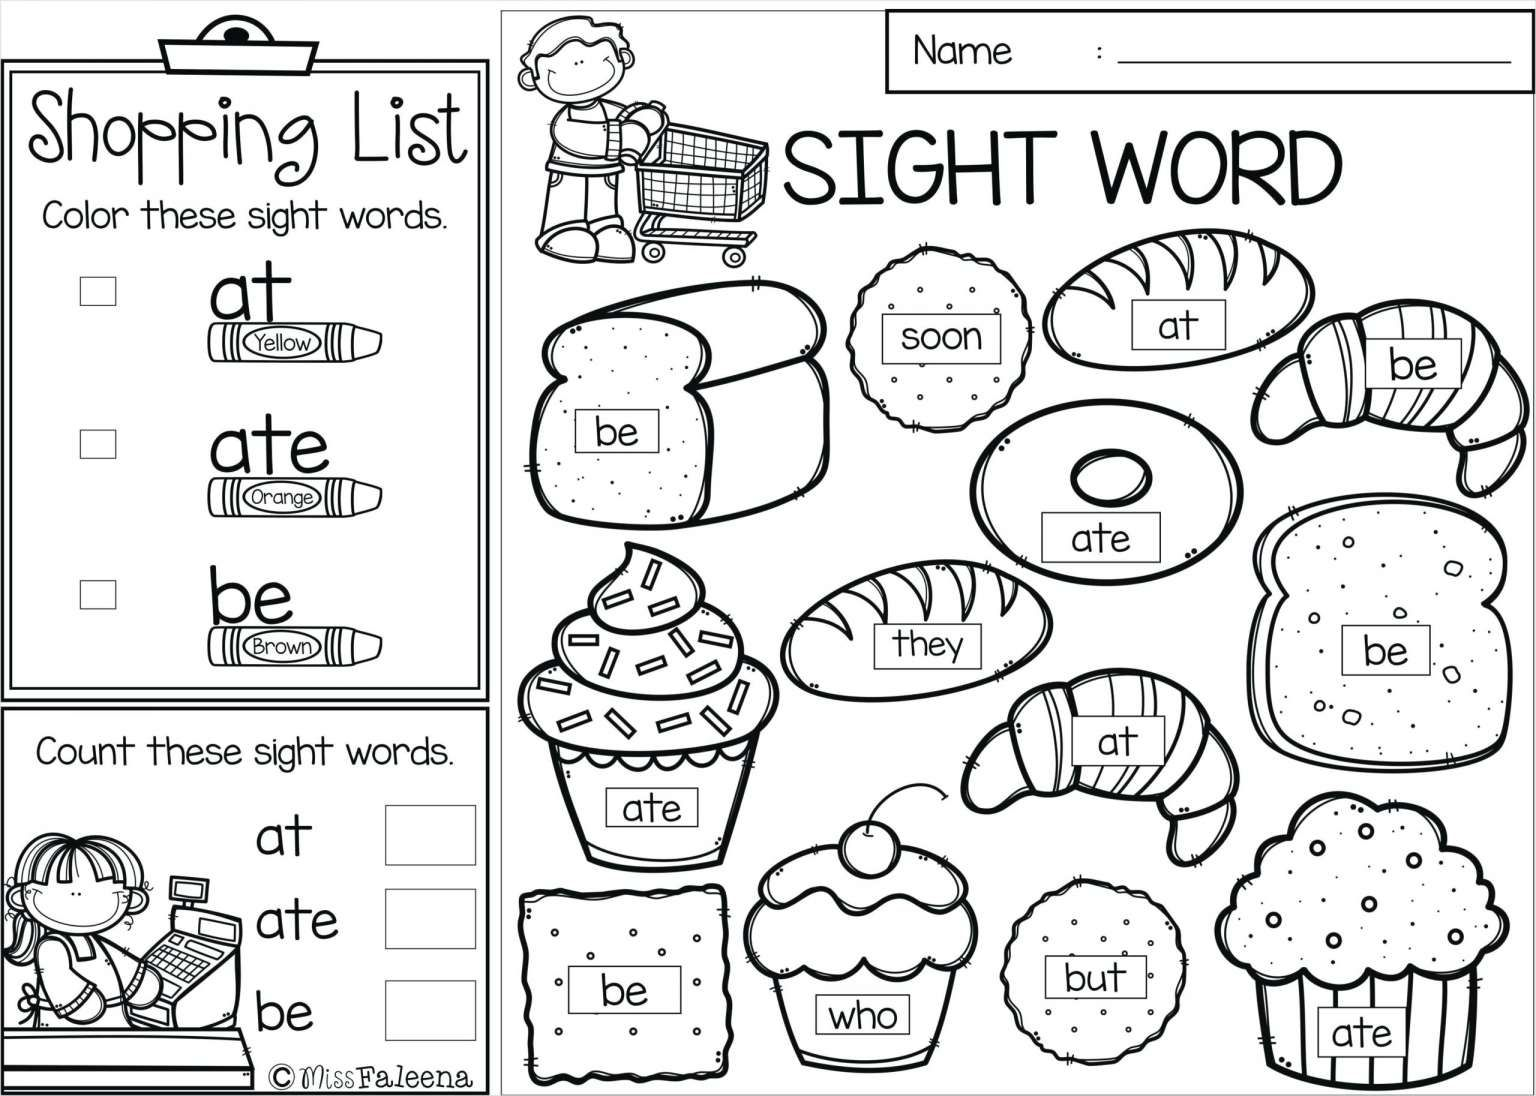 Worksheet On Myself For Kindergarten And Kindergarten